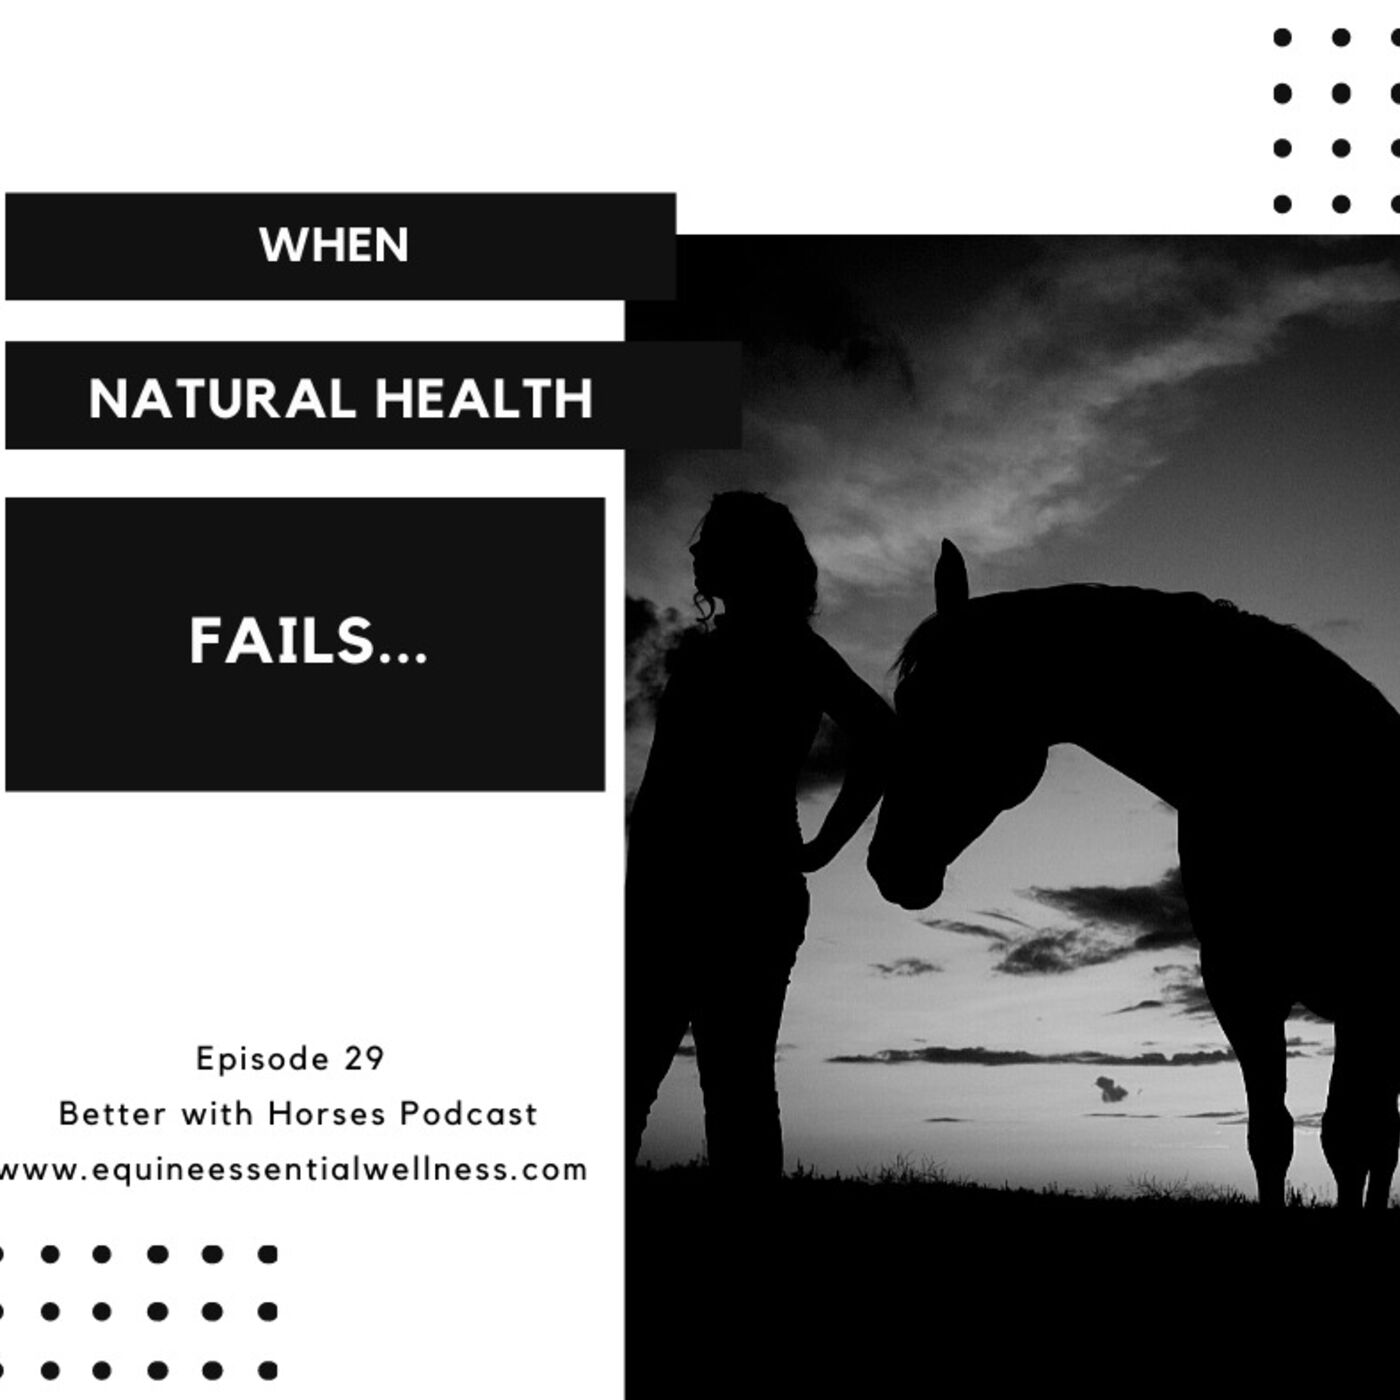 Episode 29 - When Natural Health Fails Your Horse